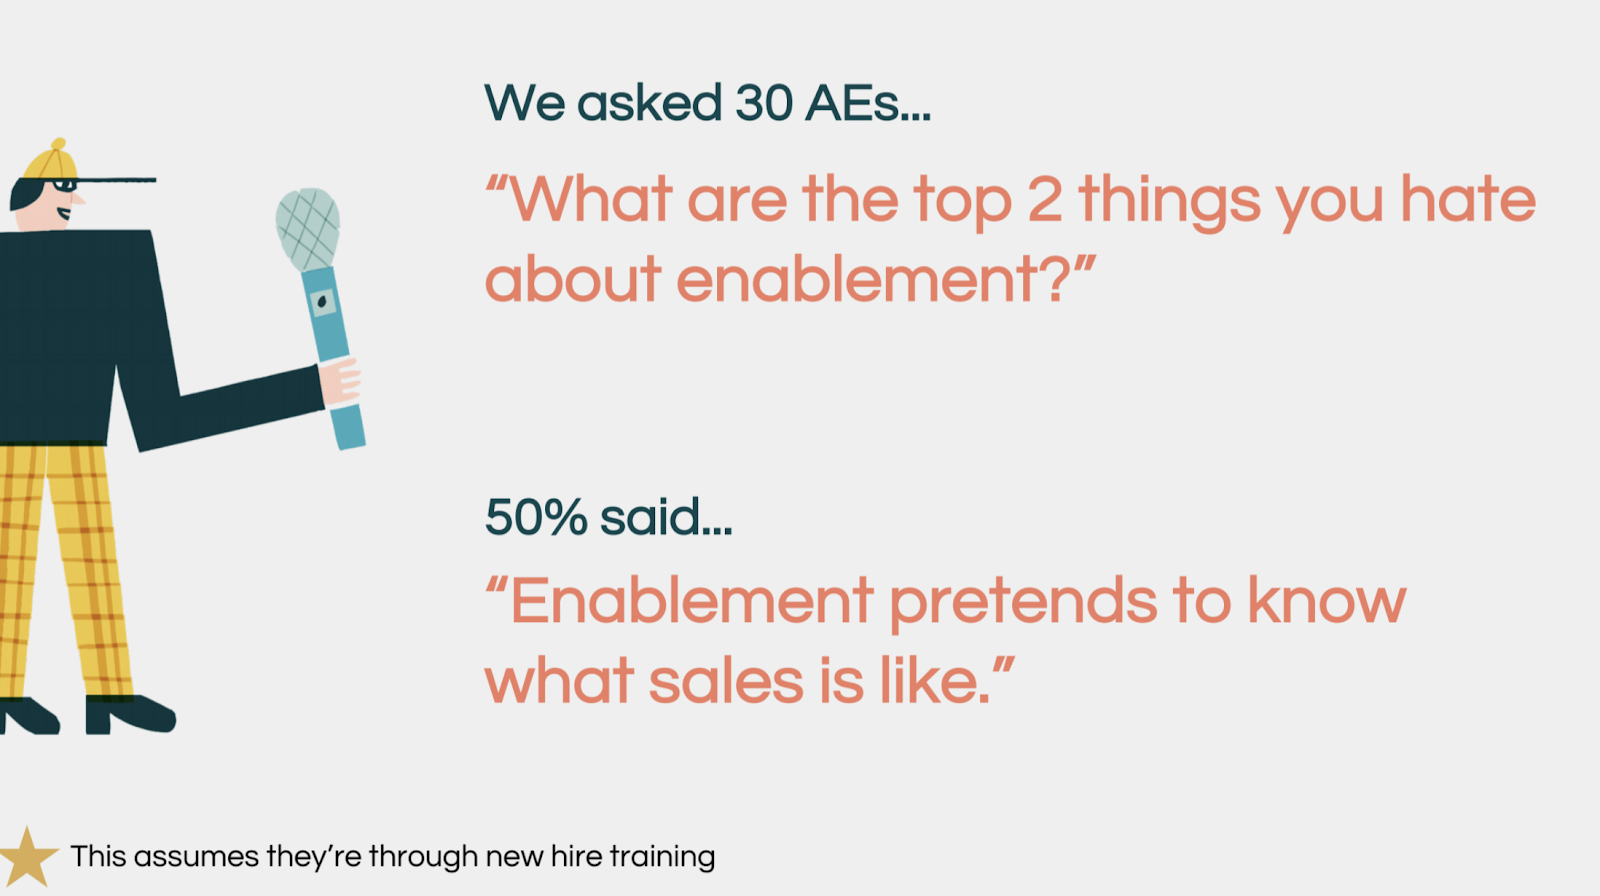 what are the top 2 things you hate about enablement?